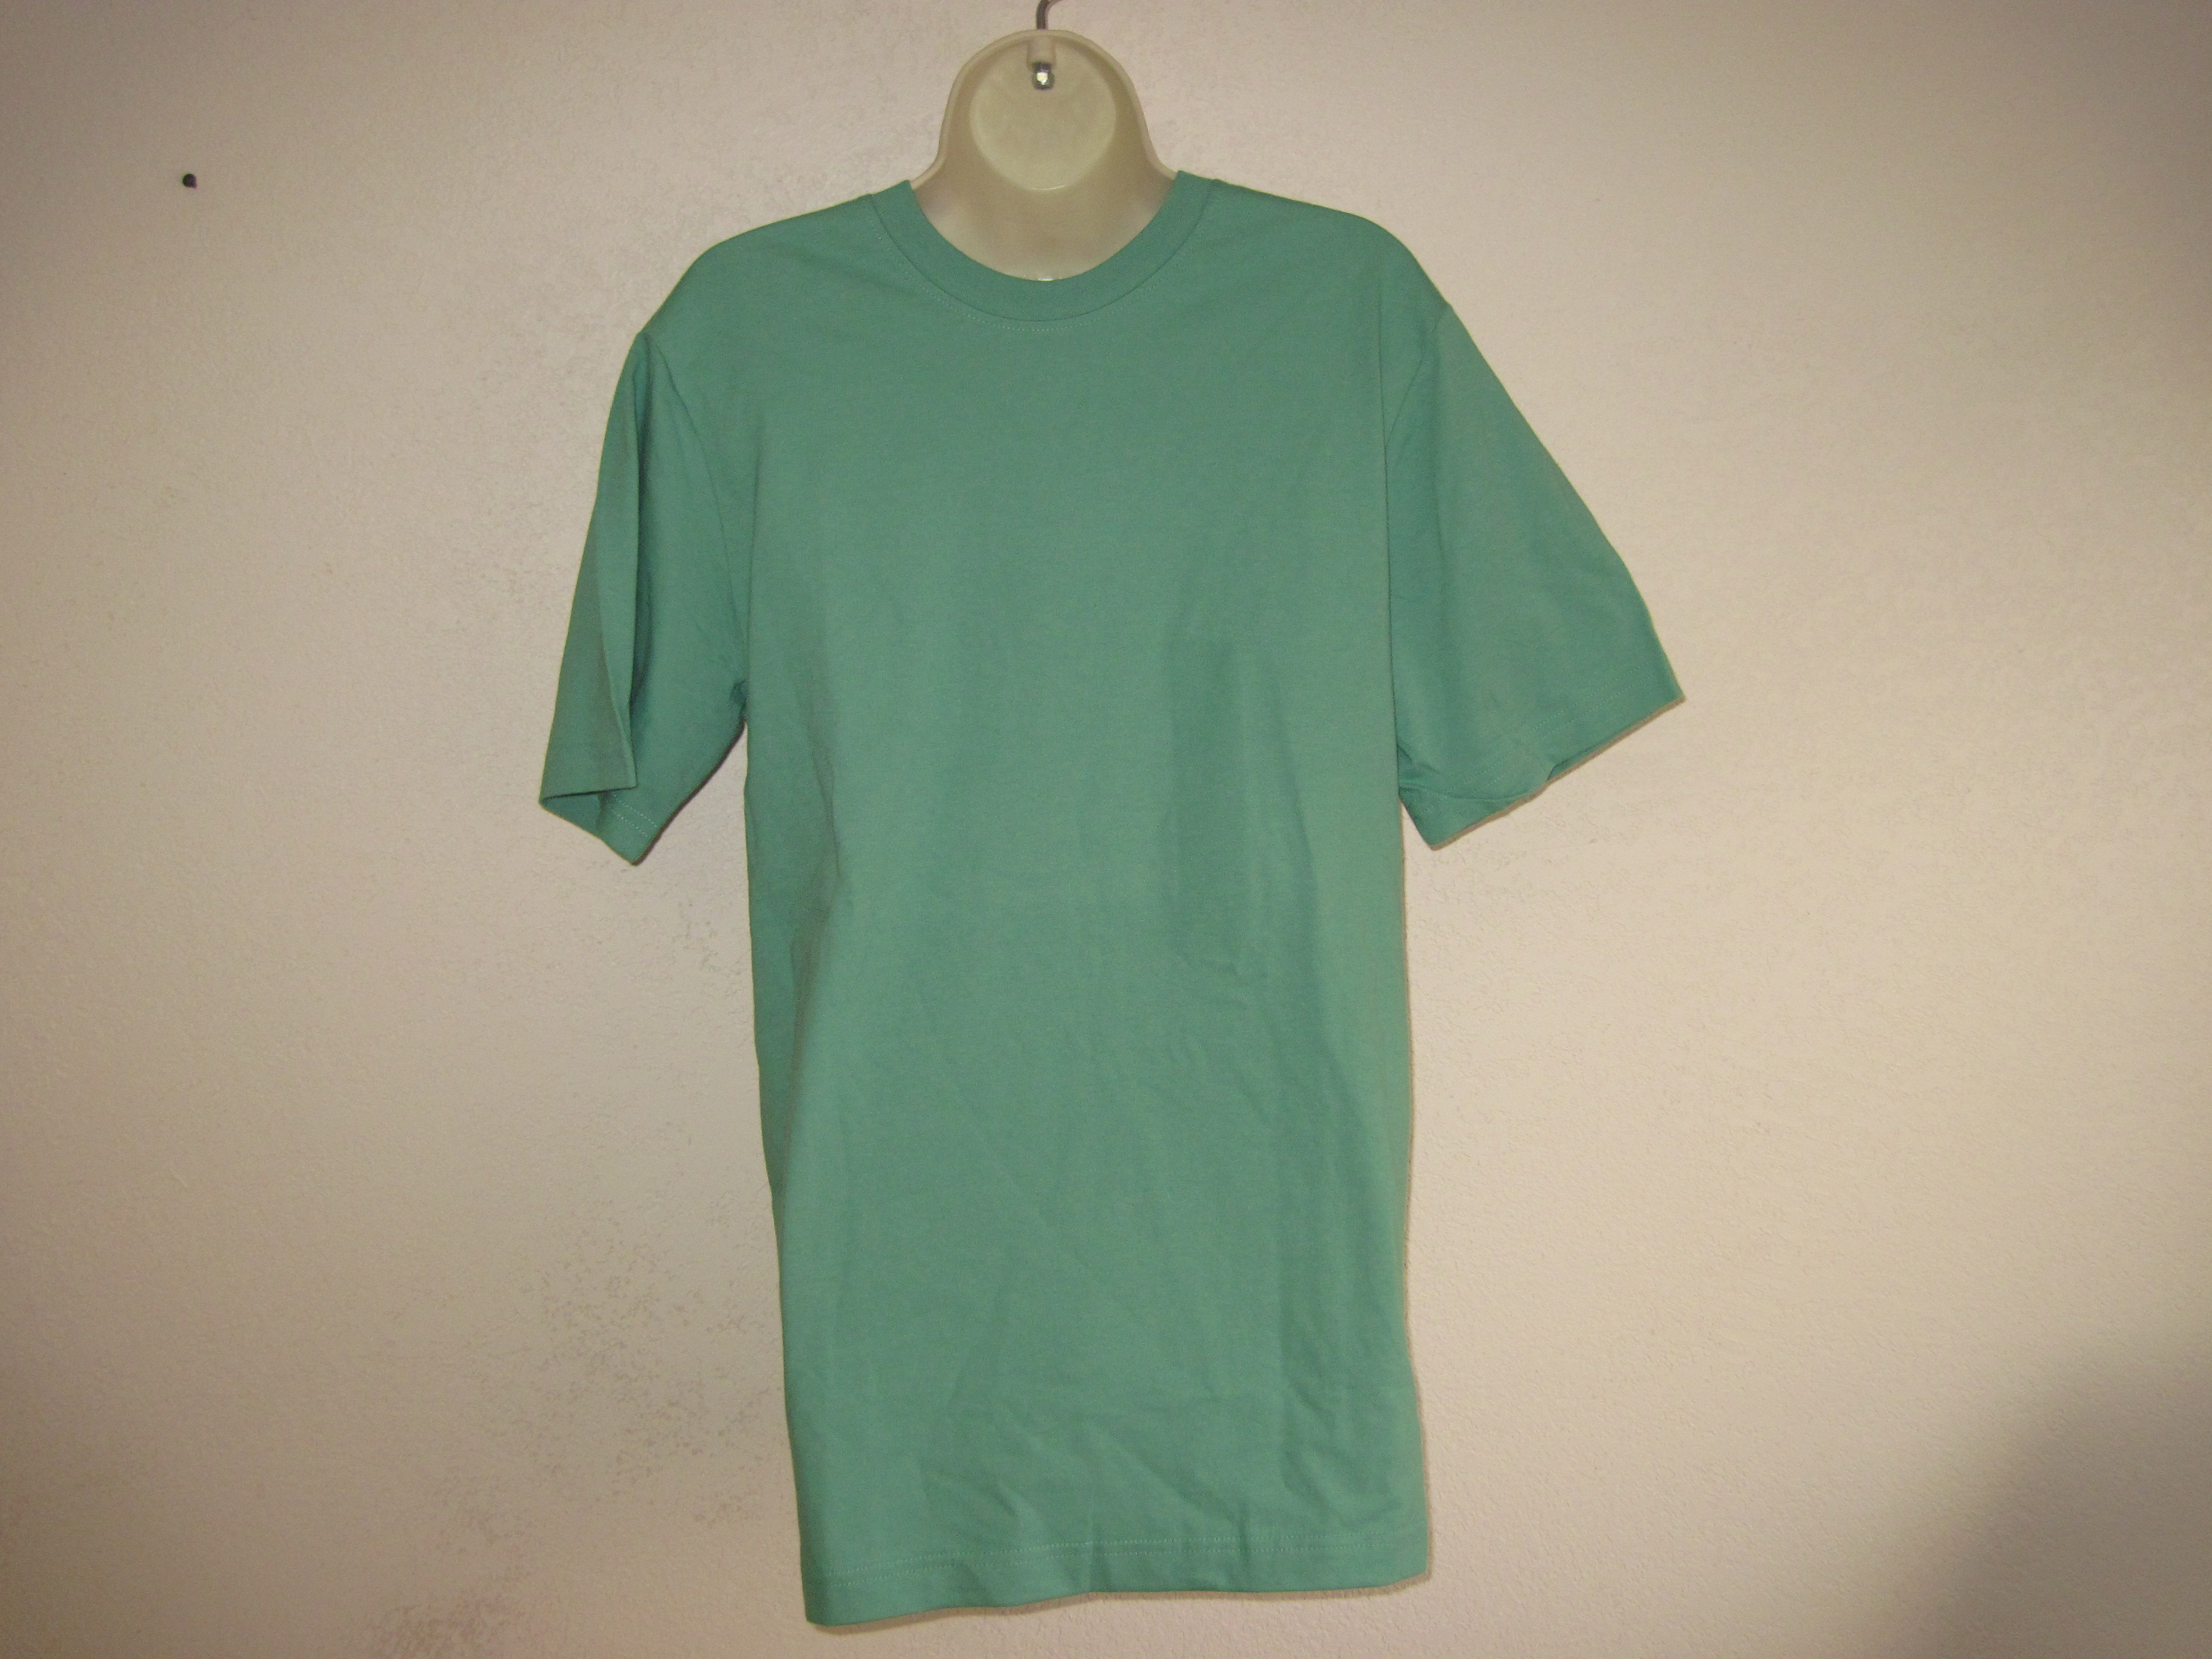 Basic Editions Sz S Short Sleeve Promo Crew T-Shirt green